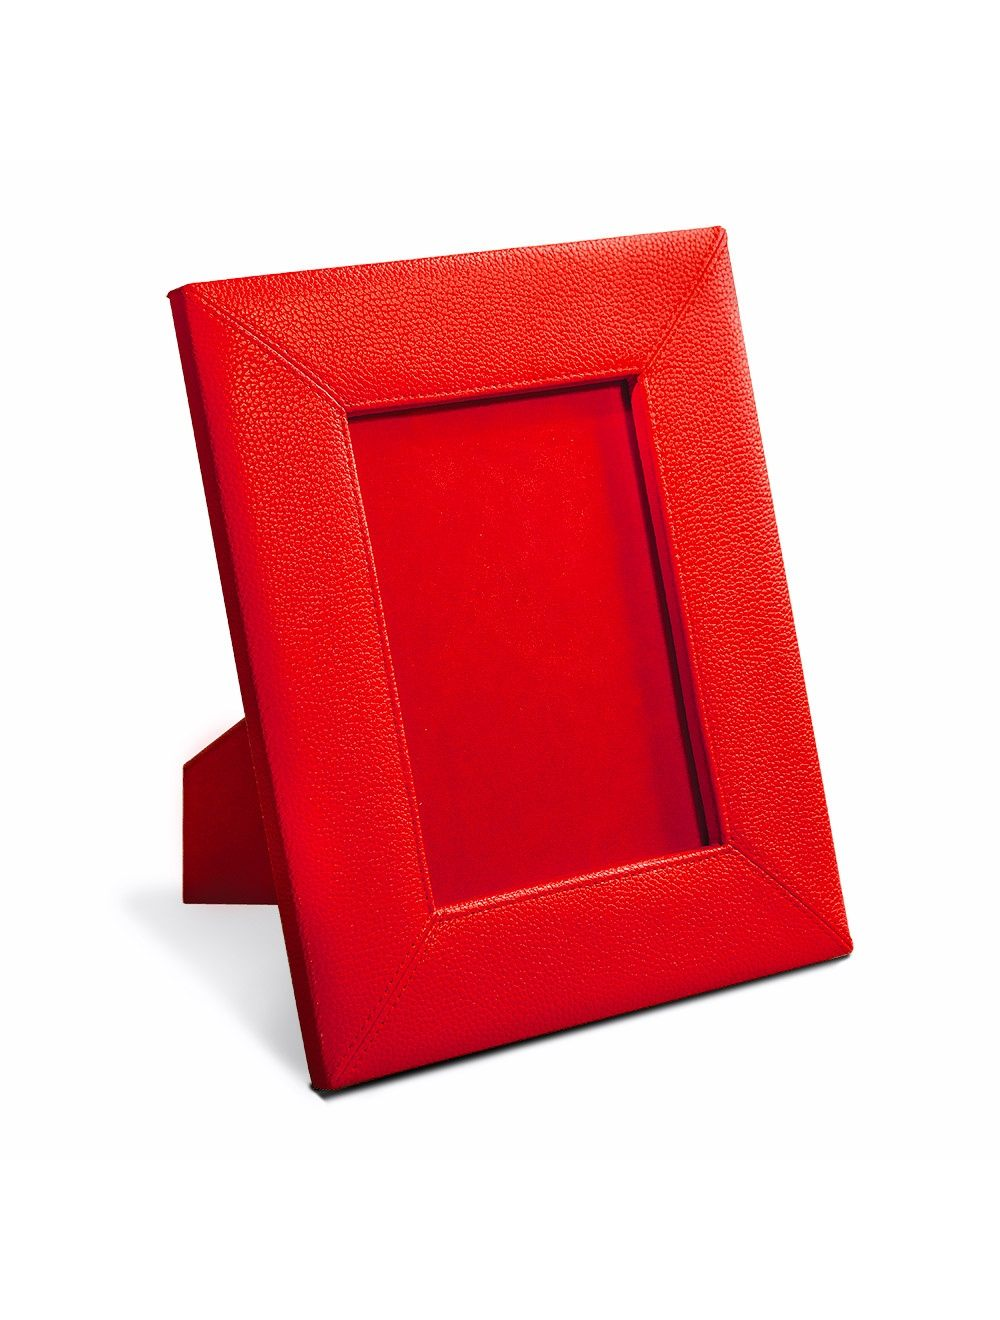 Photo Frame 13x18 Metal Plate - Cherry Red